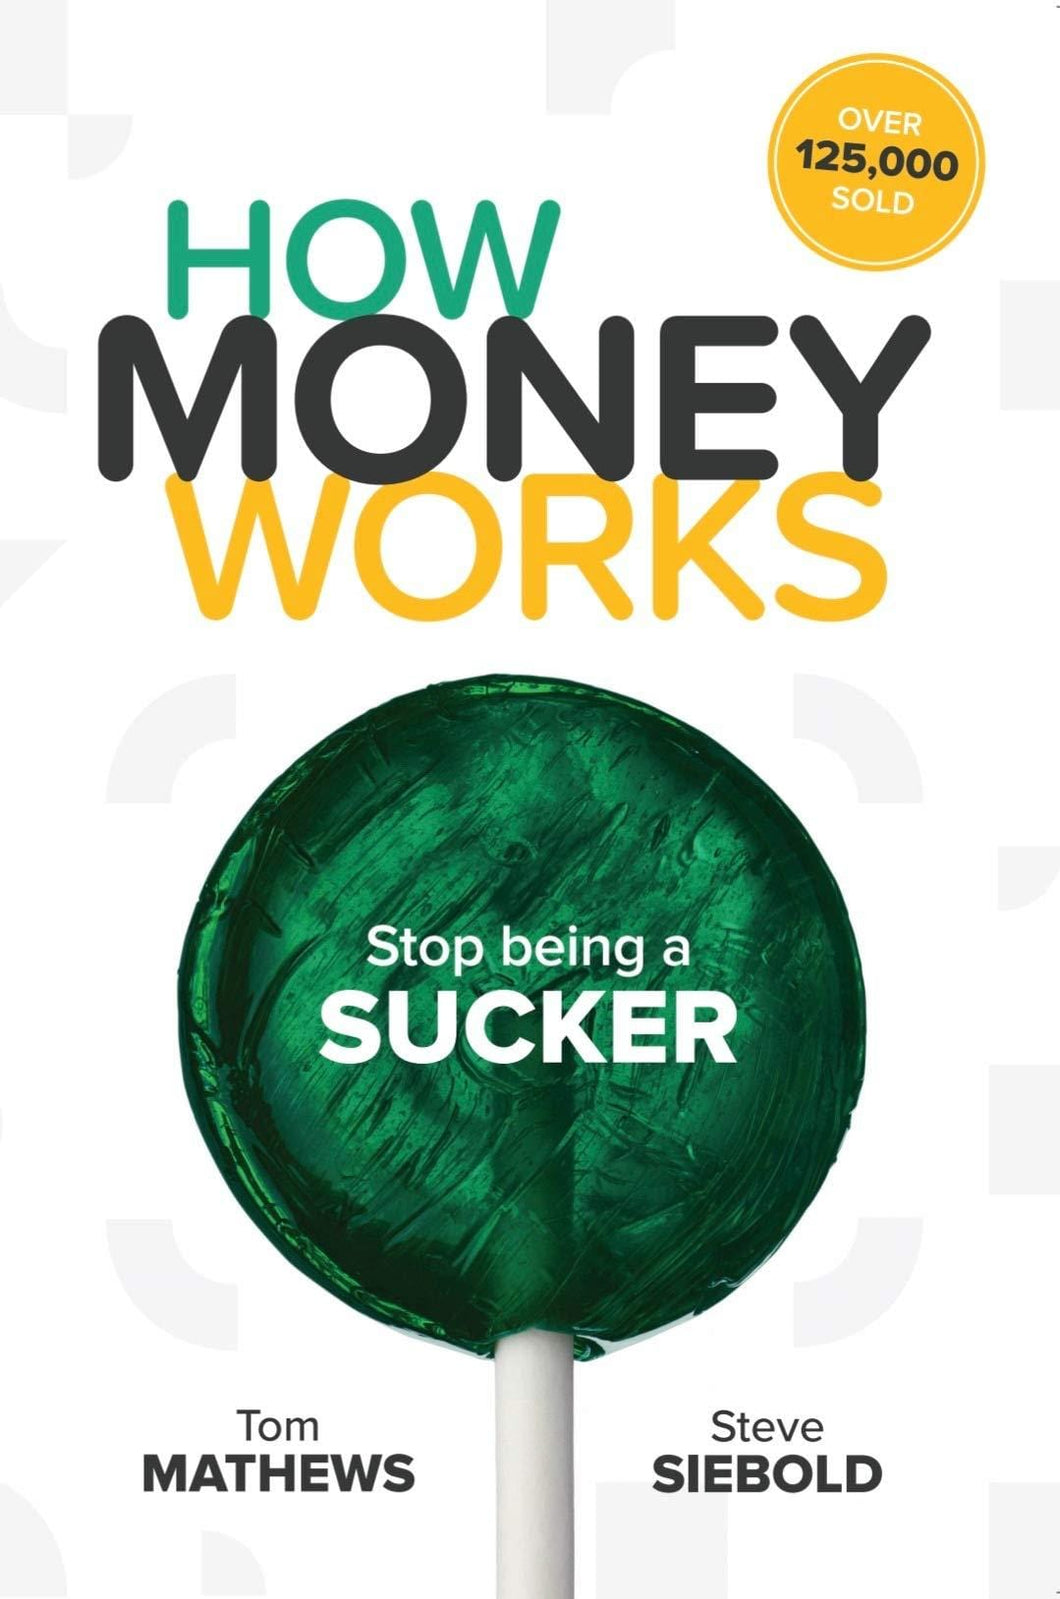 How Money Works: Stop being a SUCKER - Tolerant Planet